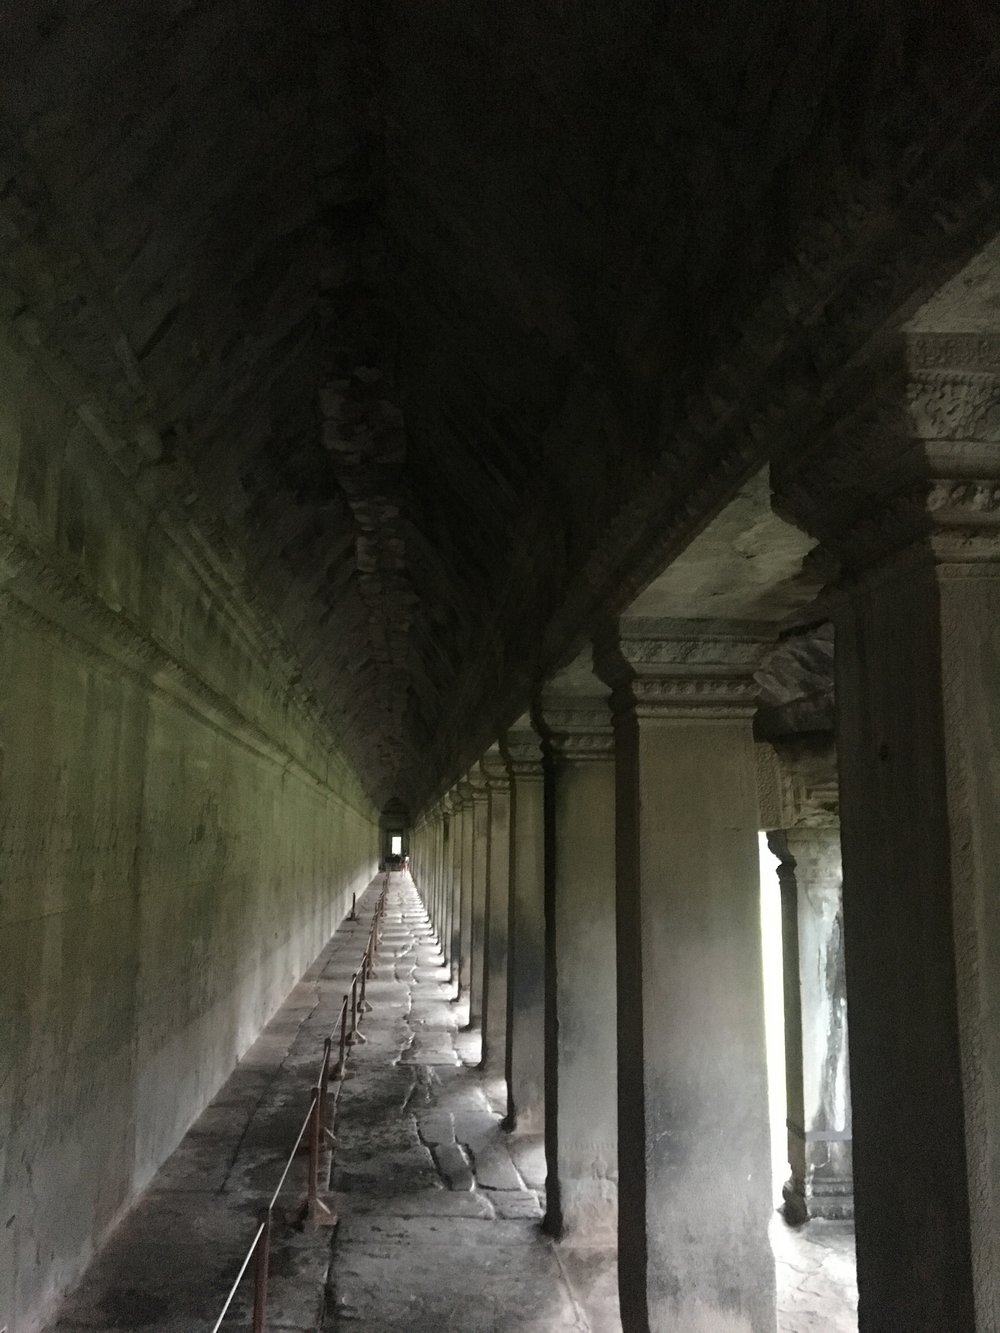 Exploring inside the temples